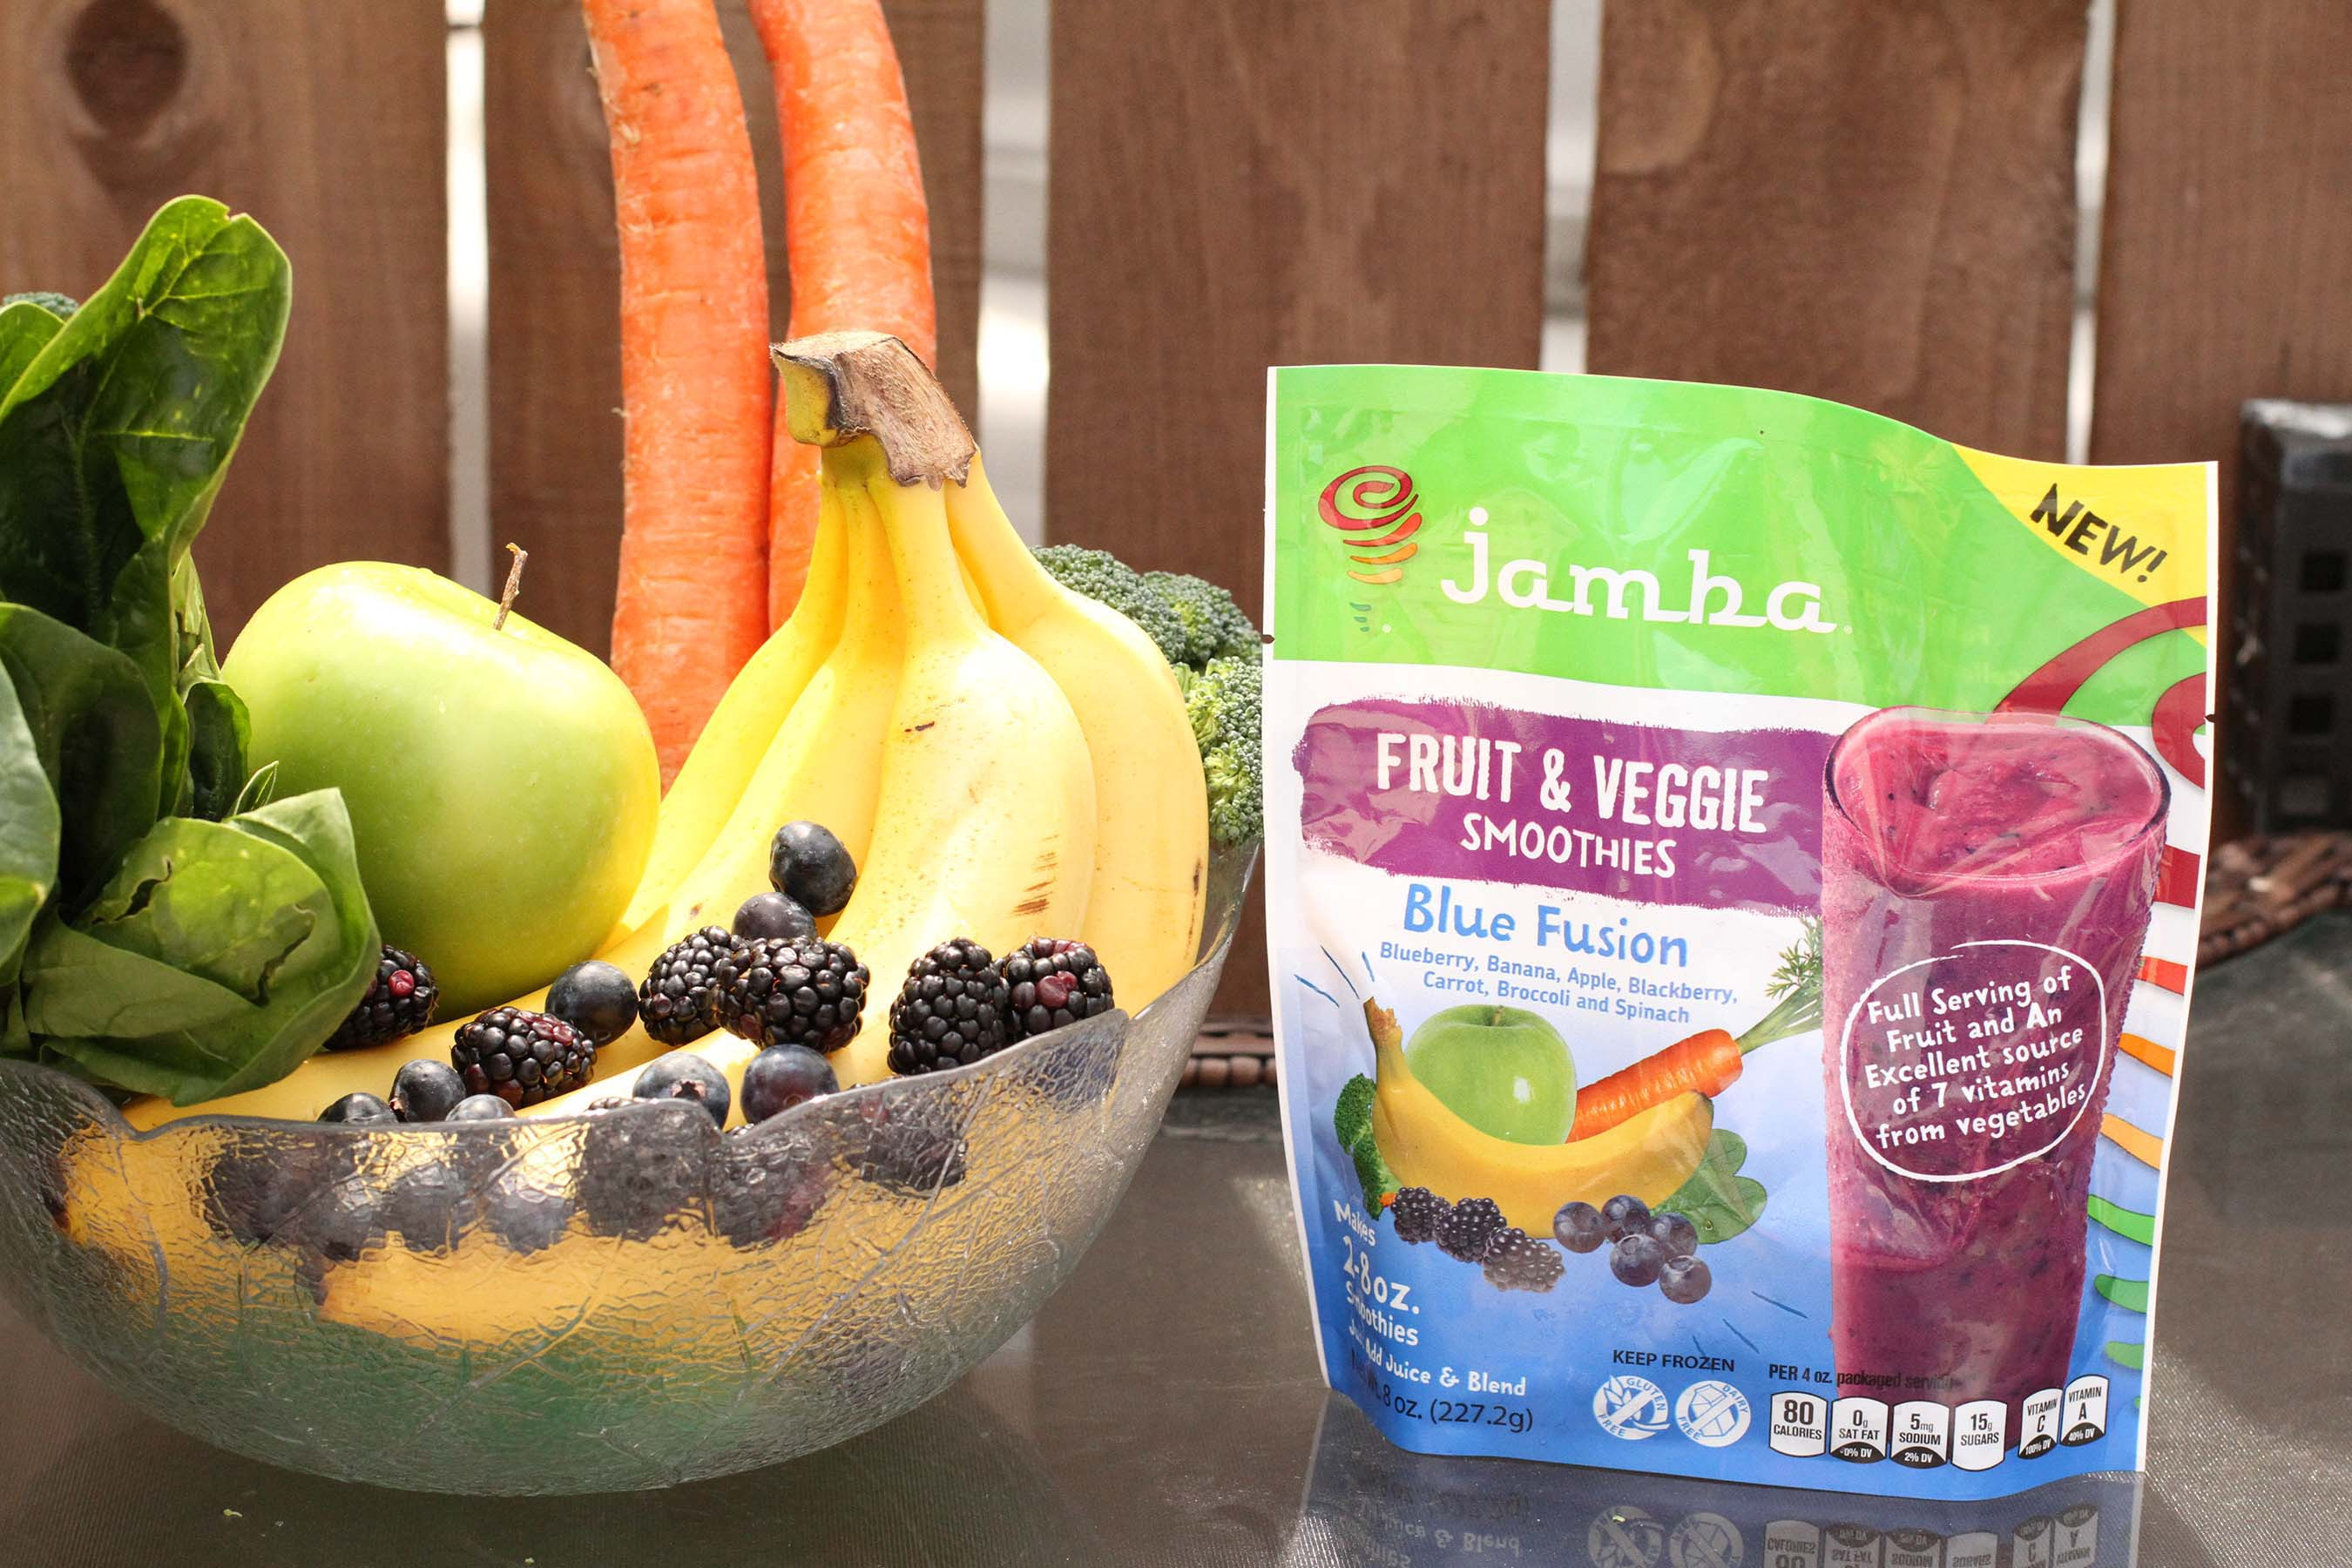 Made with whole frozen fruit and vegetables sections, the new Red Fusion and Blue Fusion from Jamba At Home Fusion offer an unparalleled combination of nutrition and convenience.